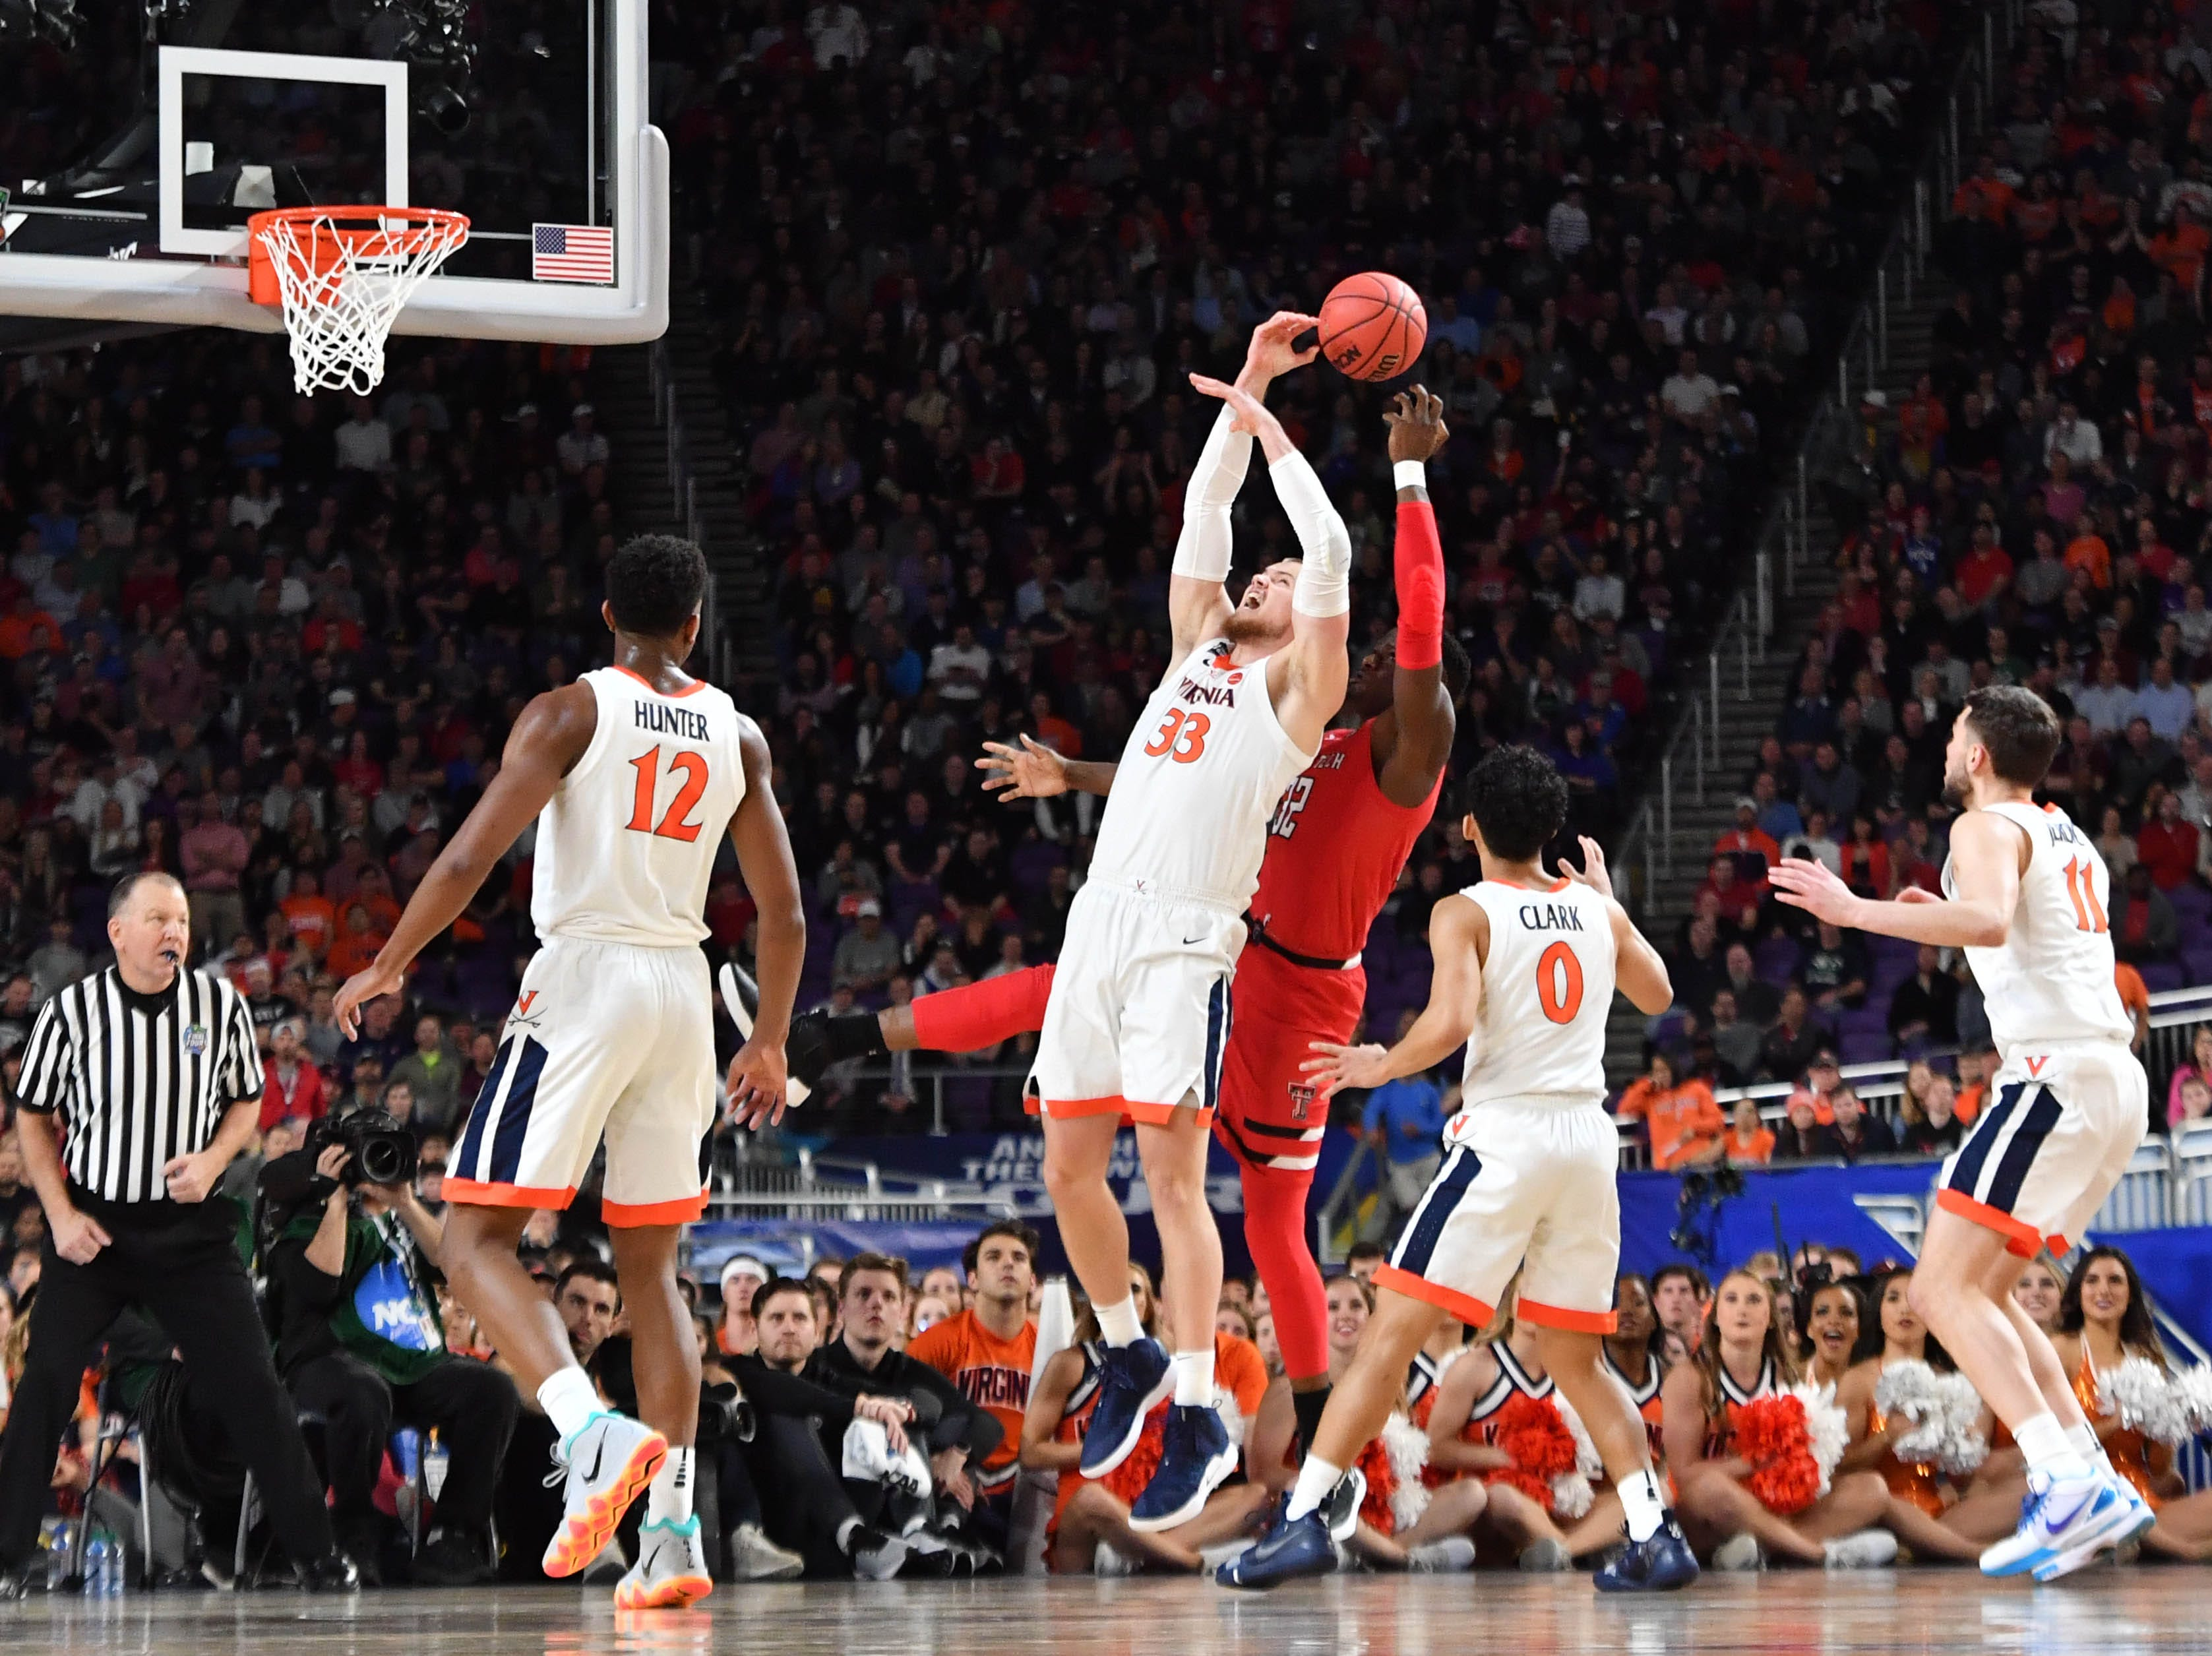 Apr 8, 2019; Minneapolis, MN, USA; Virginia Cavaliers center Jack Salt (33) battles for a rebound with Texas Tech Red Raiders center Norense Odiase (32) in the first half in the championship game of the 2019 men's Final Four at US Bank Stadium. Mandatory Credit: Robert Deutsch-USA TODAY Sports